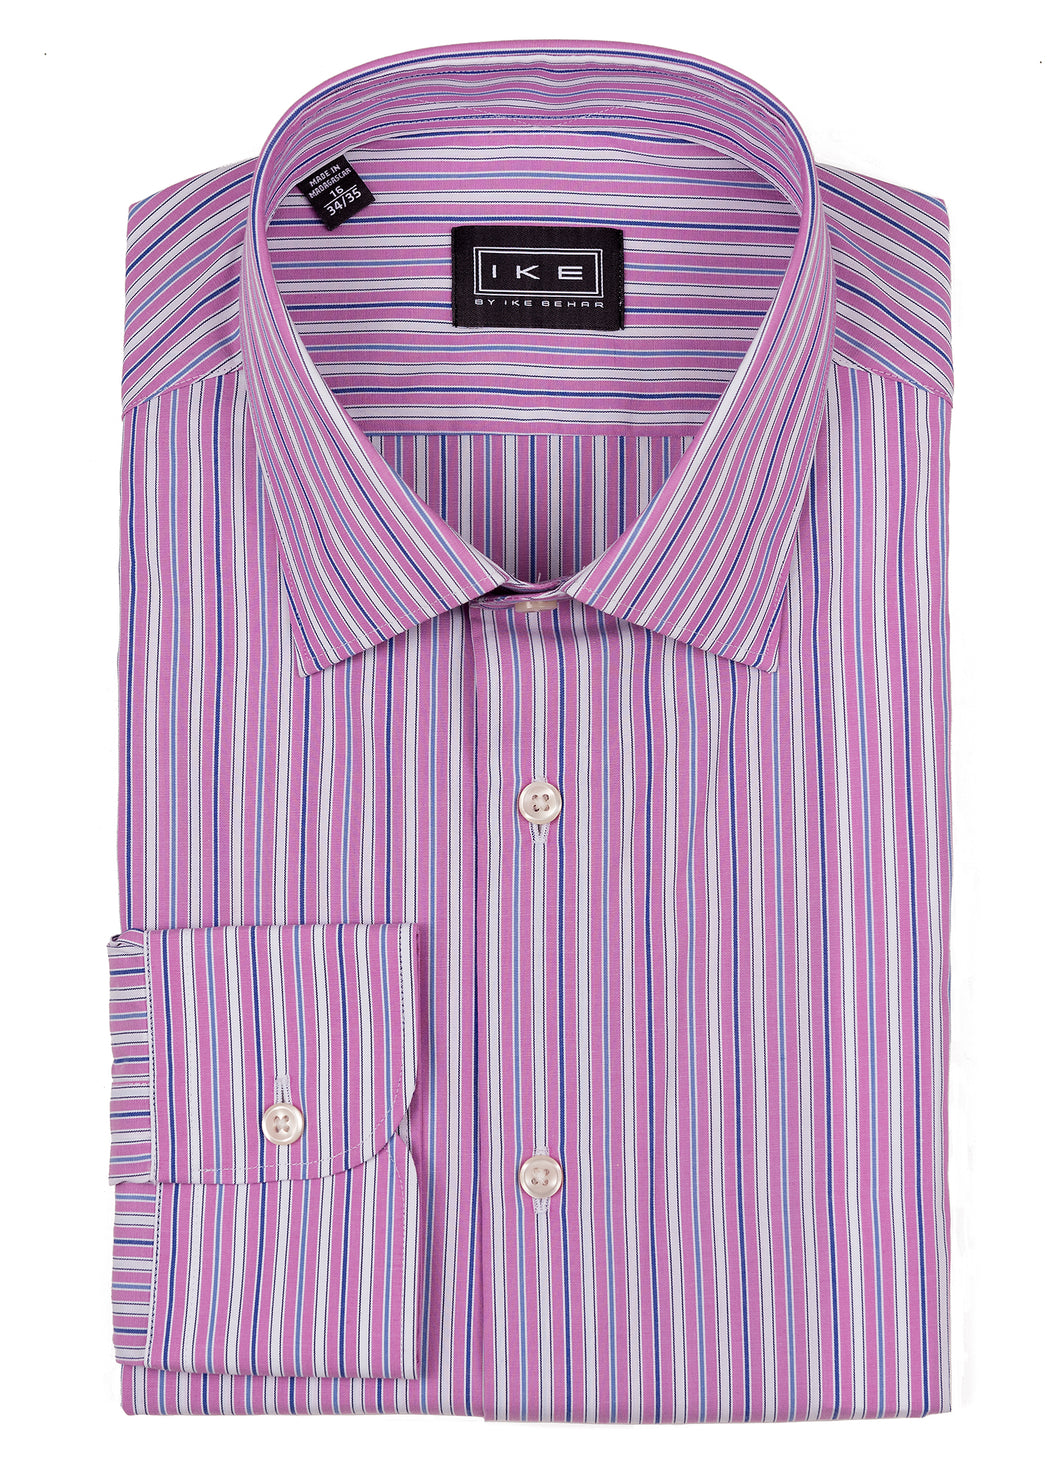 Pink Multi-Stripe Ike by Ike Behar Dress Shirt